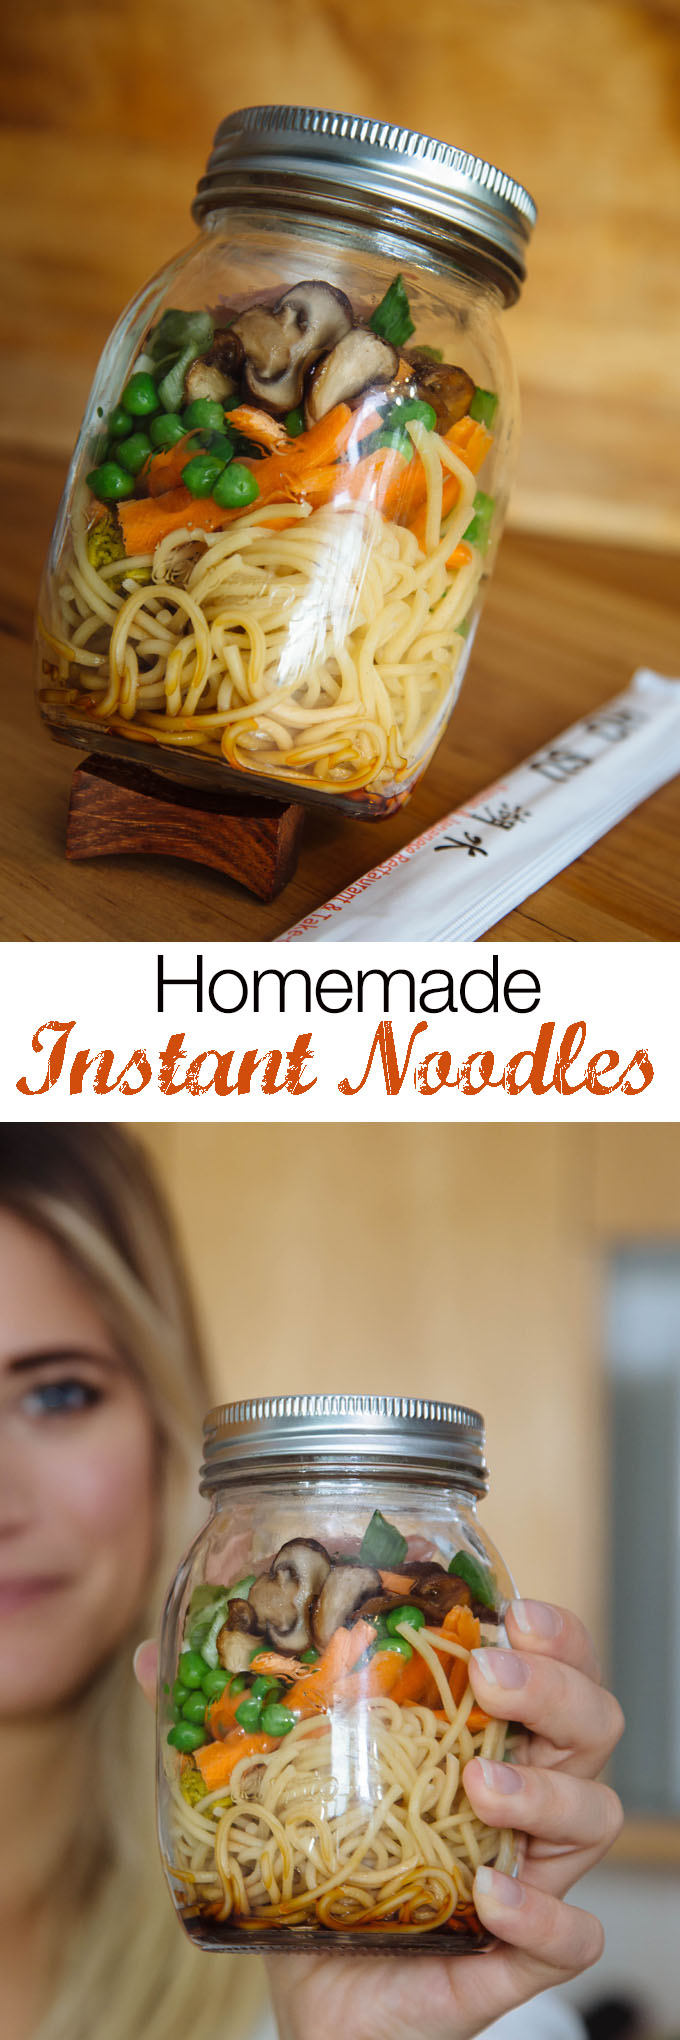 How to Make Homemade Instant Noodles